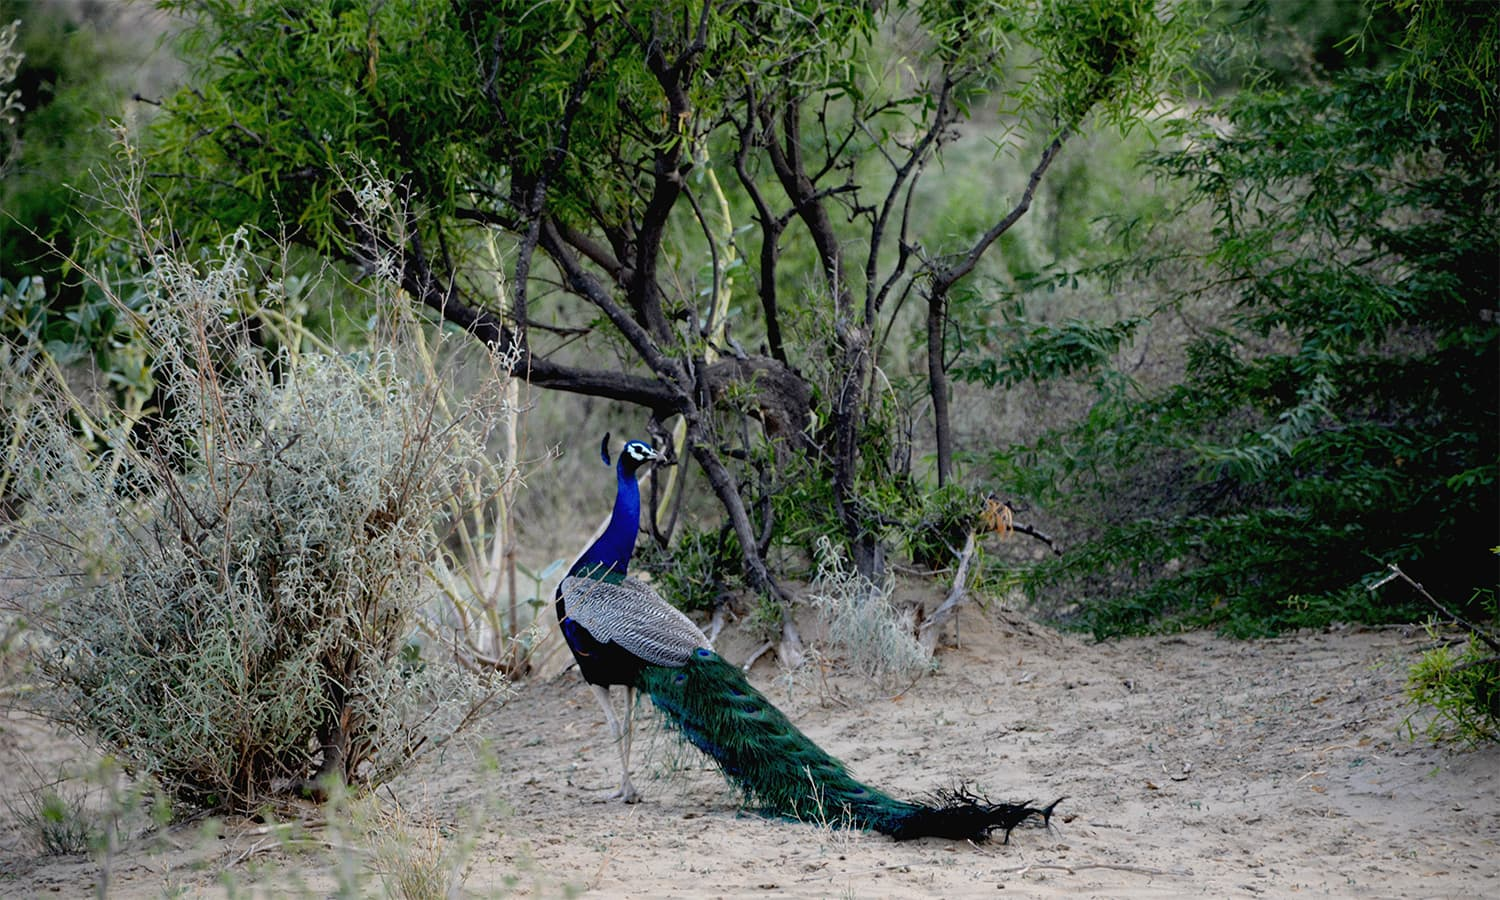 Thar Desert is home many wildlife species including blue peacocks and antelopes. ─ Photo by author